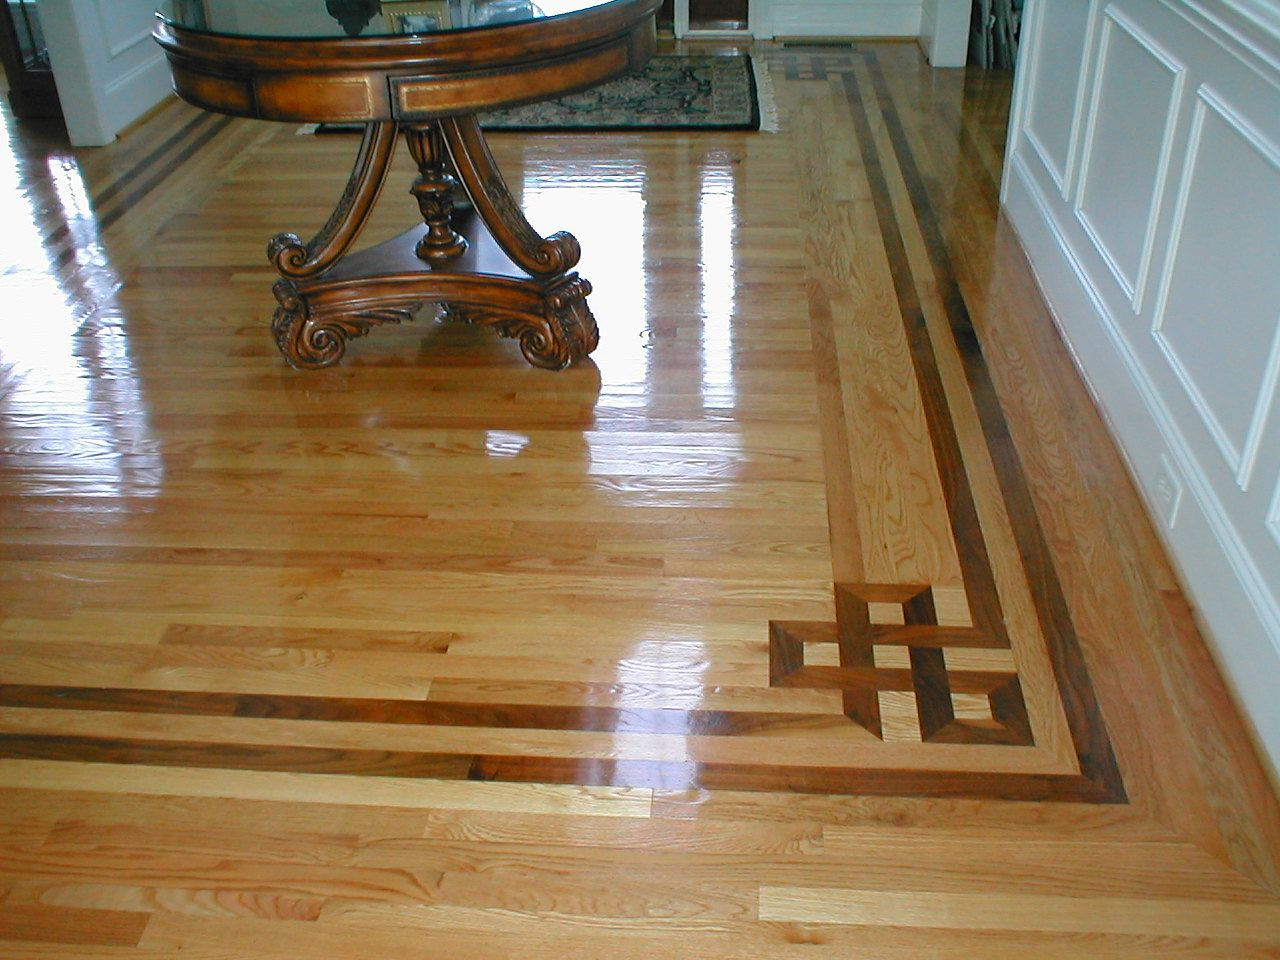 22 Ideal Cheap Hardwood Flooring Denver 2021 free download cheap hardwood flooring denver of i love the illusion of depth created by this border you can tell in i love the illusion of depth created by this border you can tell the installers took car